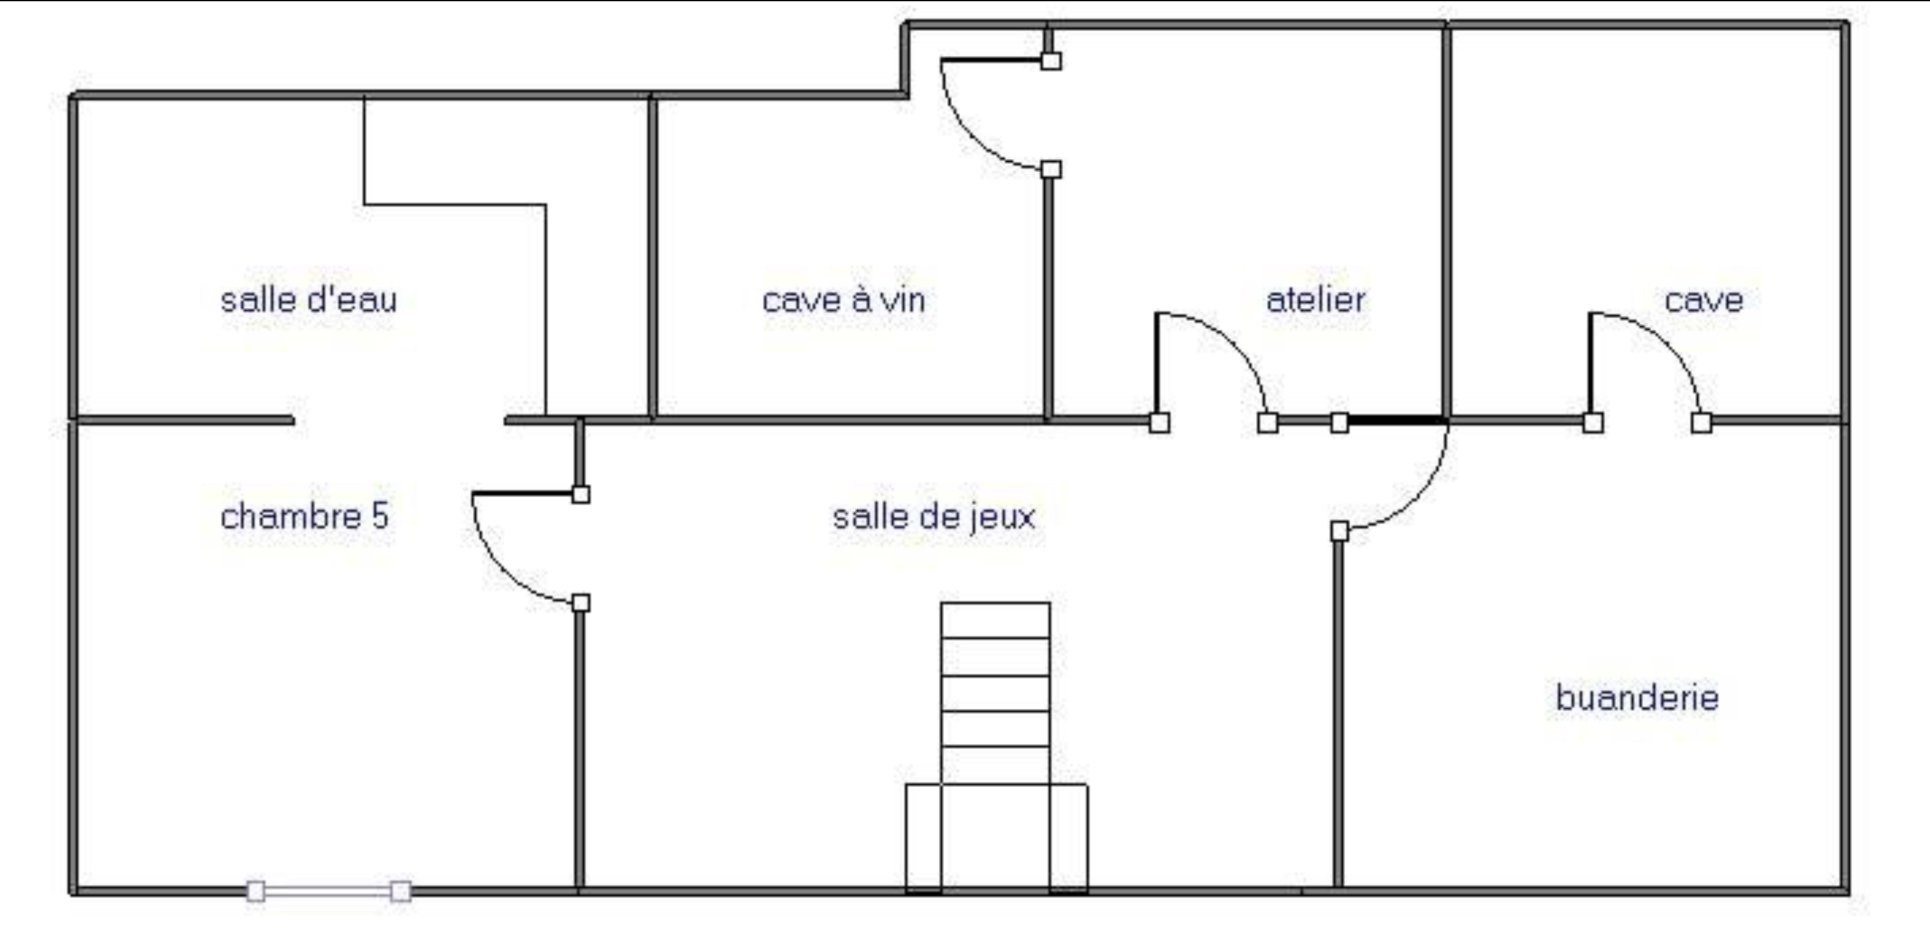 6 plan du loft la grenadine for Plan de loft